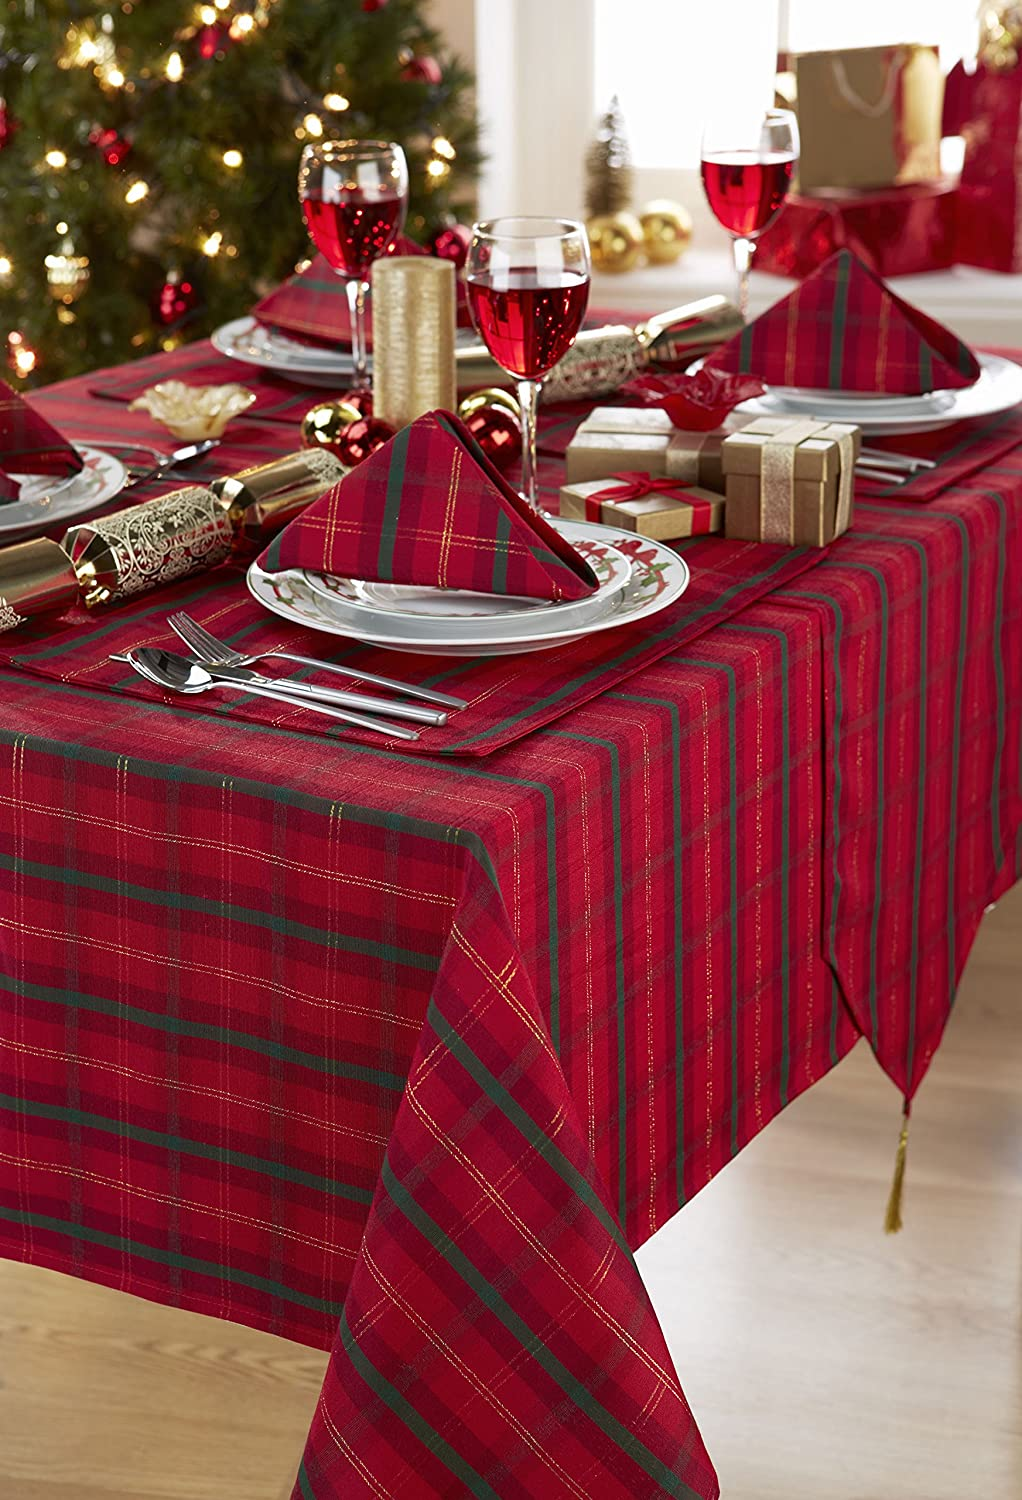 Charmant Tartan Red/Gold ChristmasTablecloth Ideal For 4 6 Place Settings  (52x70in 132x178cm Approx): Amazon.co.uk: Kitchen U0026 Home